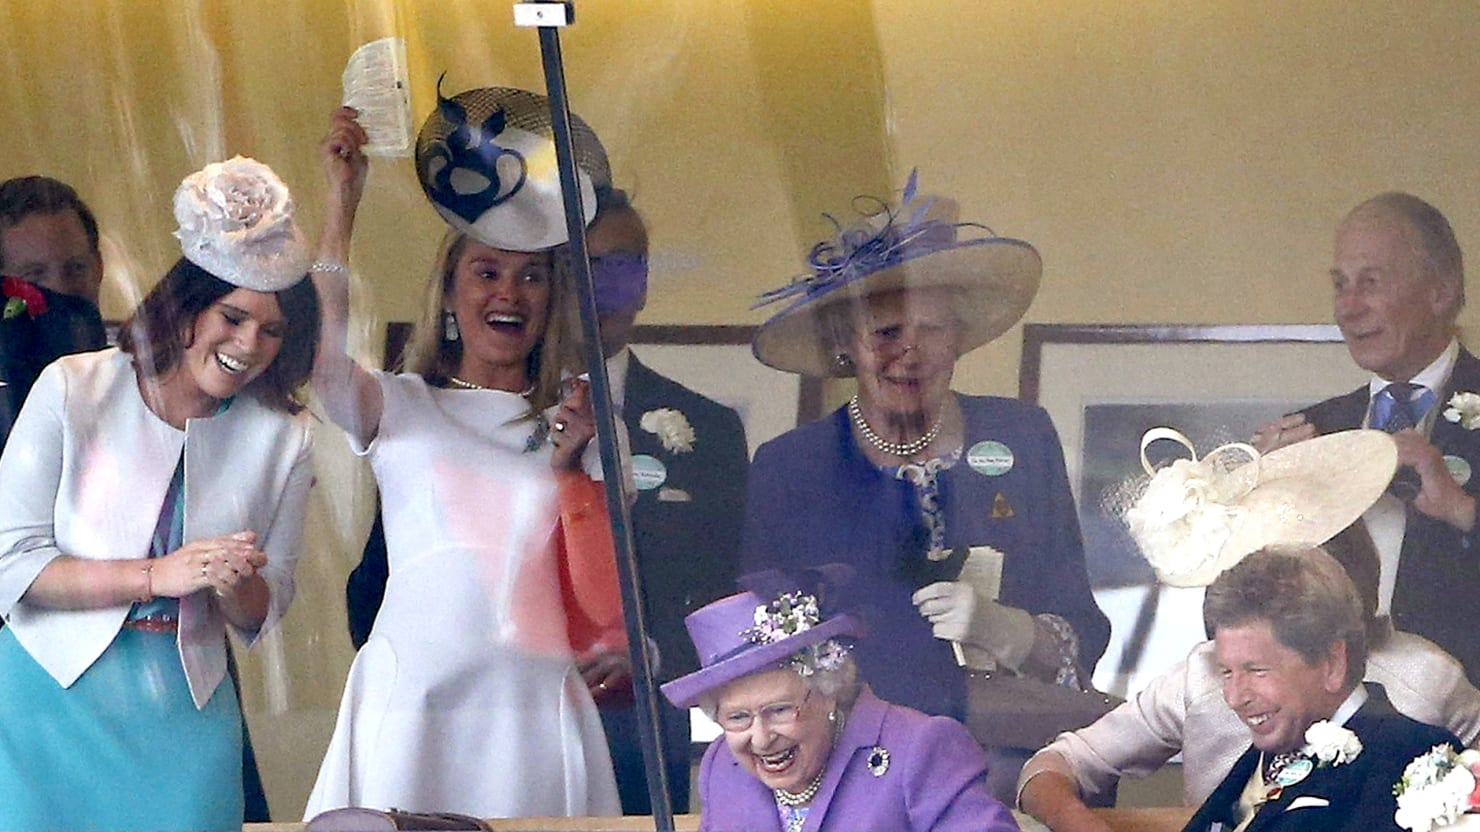 Queen Goes Nuts (For Her) As Horse Wins Gold Cup